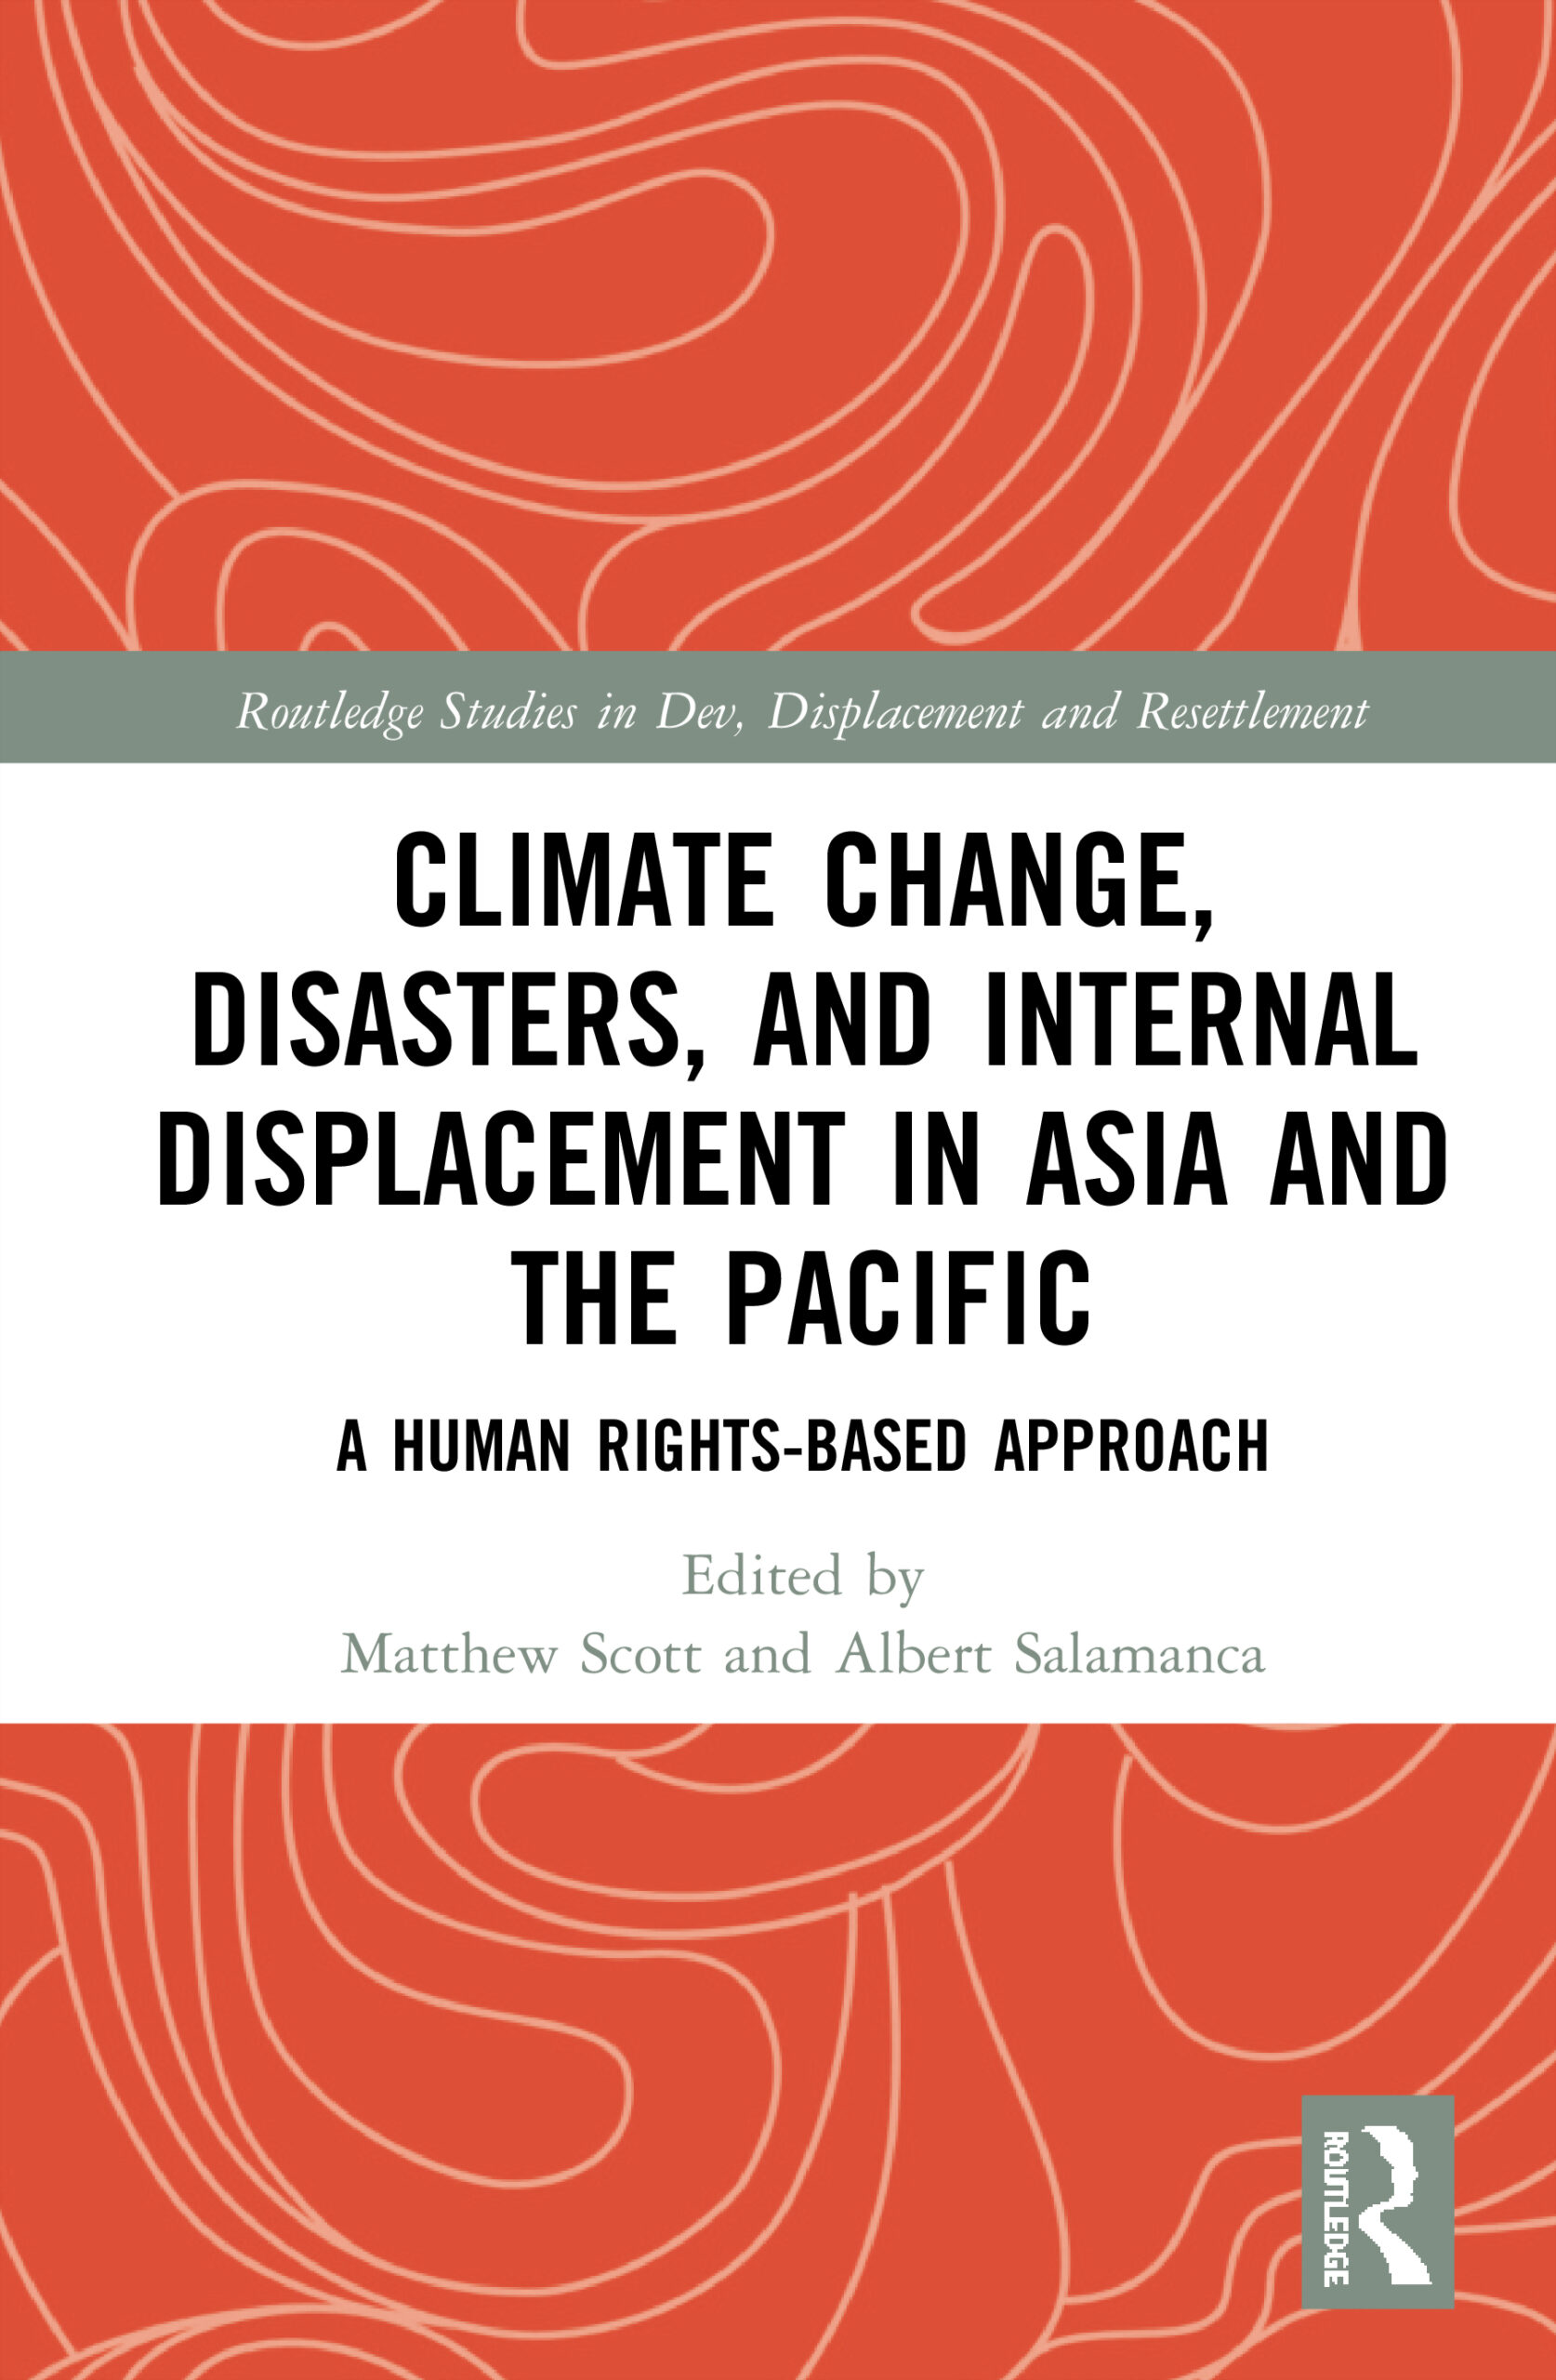 Cover Page: Red Background With Text Climate Change, Disasters And Internal Displacement In Asia And The Pacific: A Human Rights-based Approach